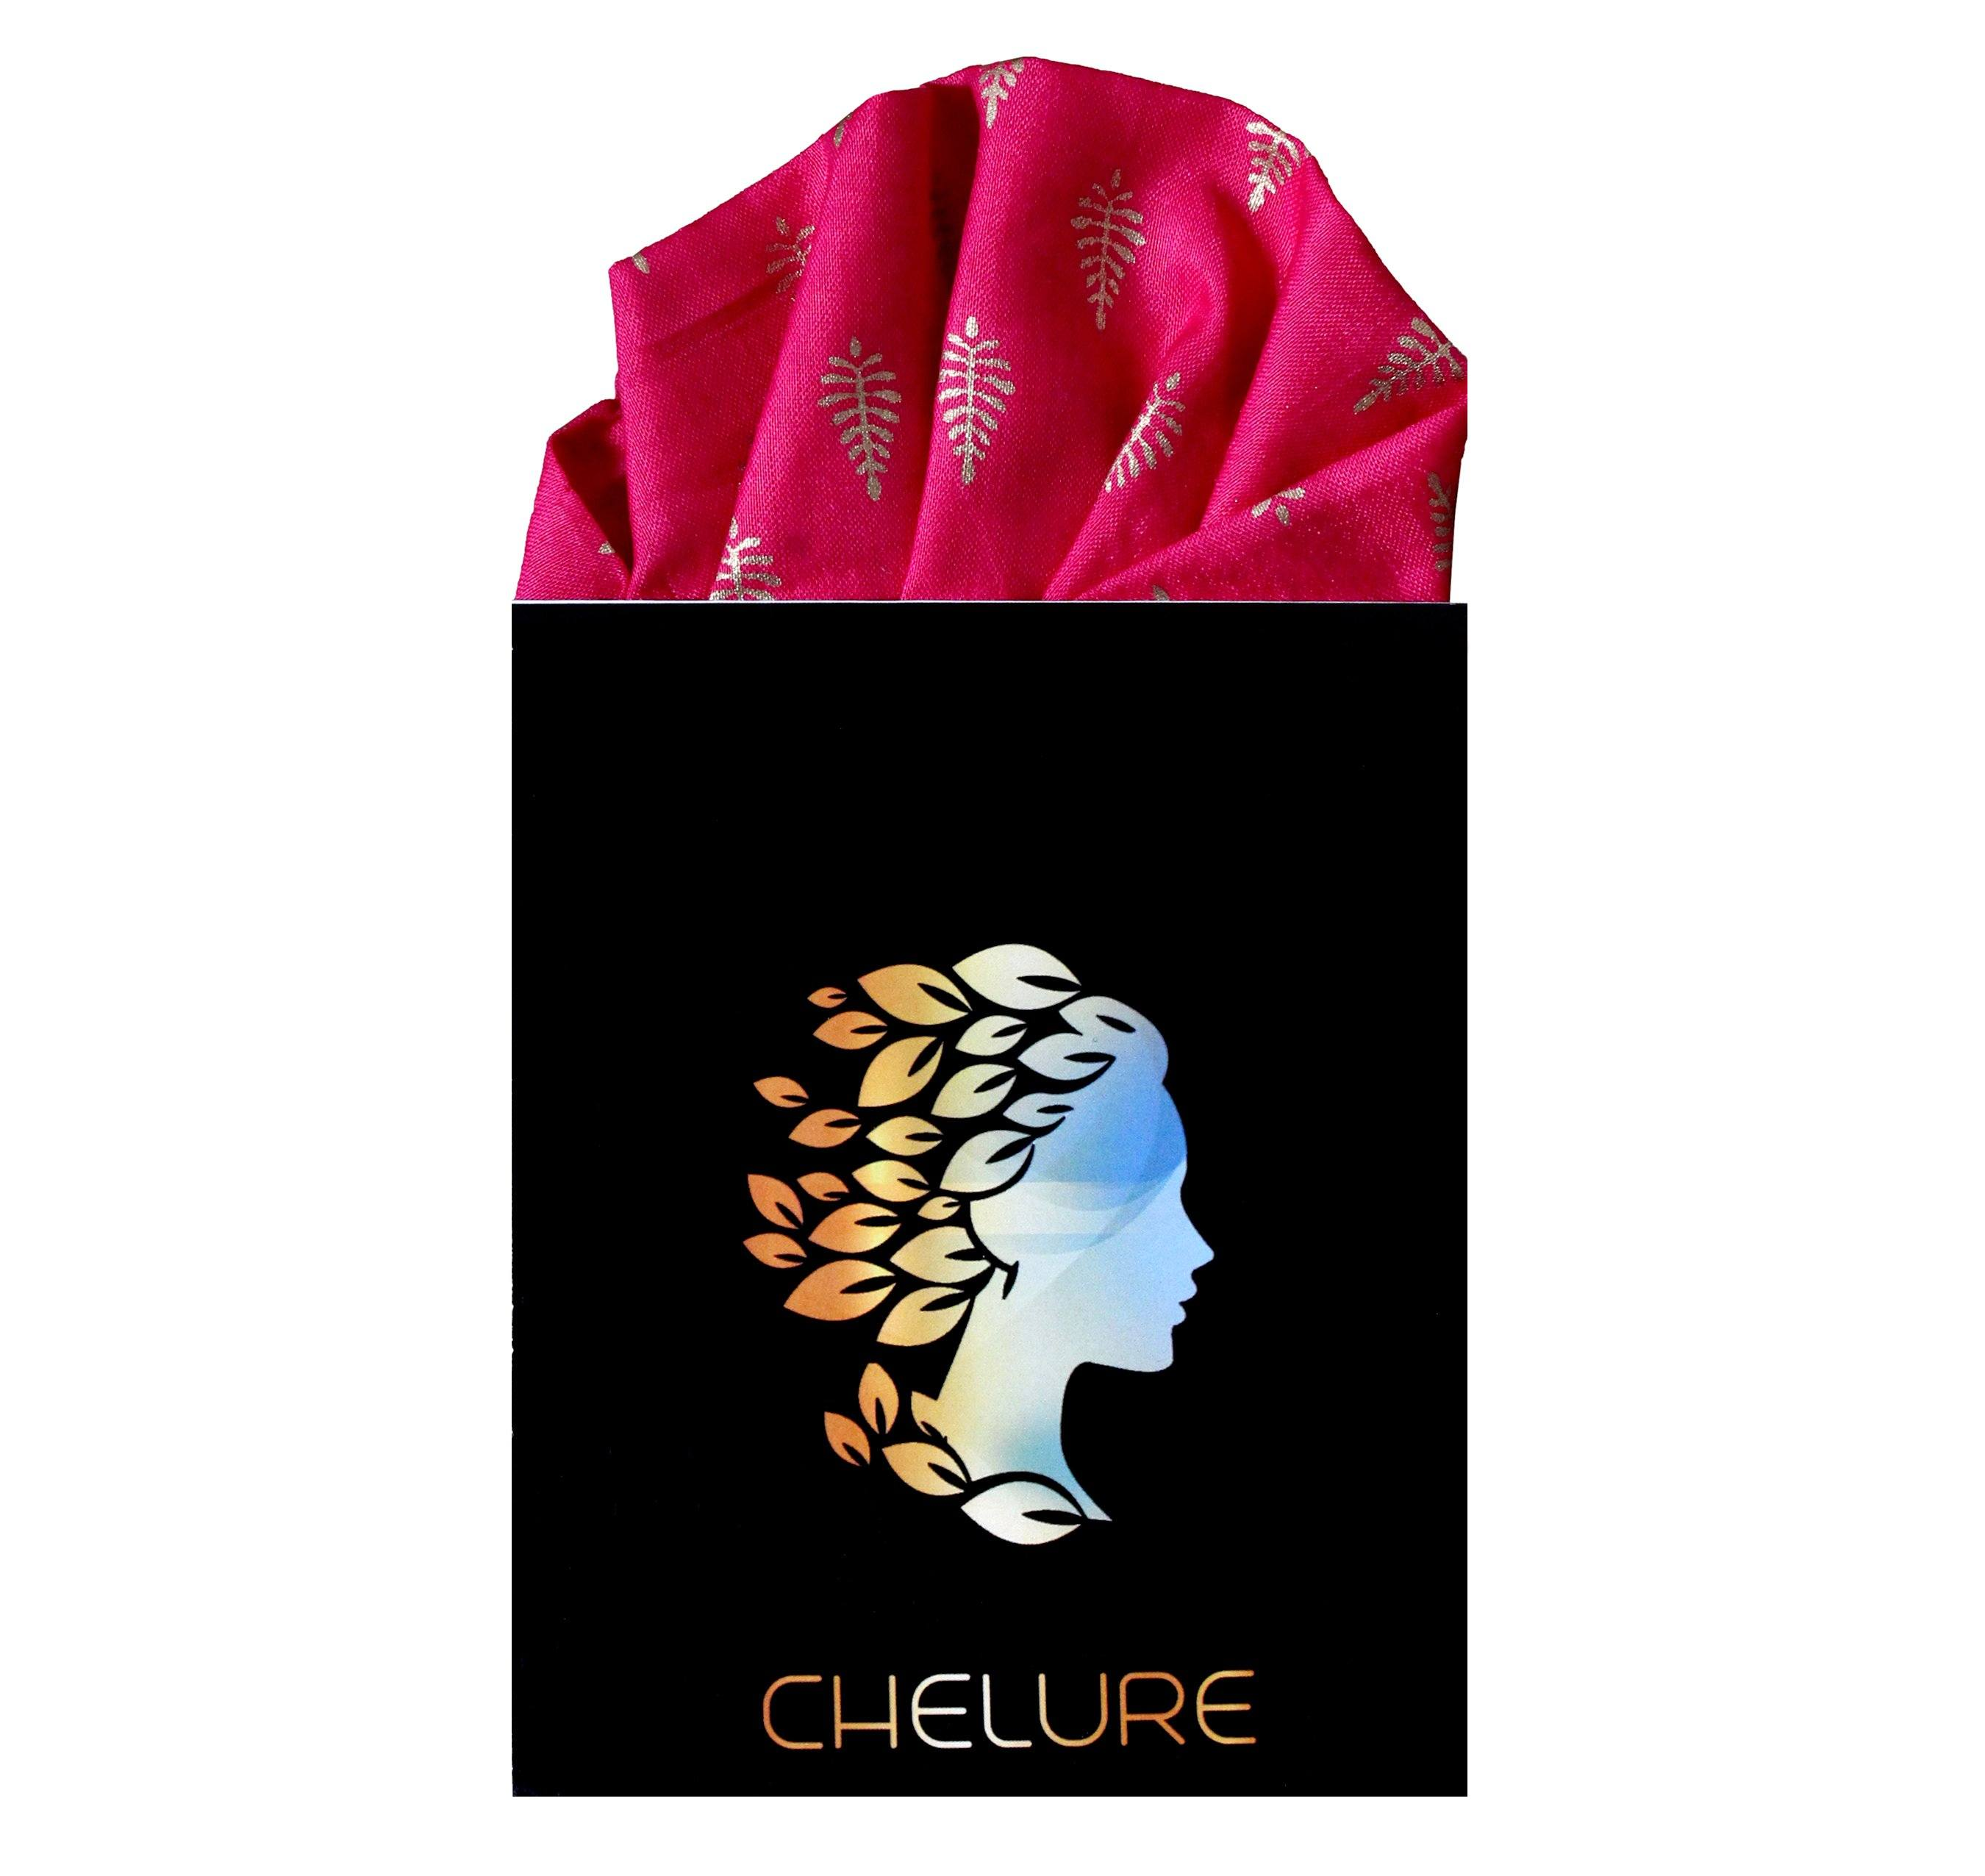 Pocket Square - TUZECH Chelure Handmade Ready To Use Pocket Square For Men For Designer Party